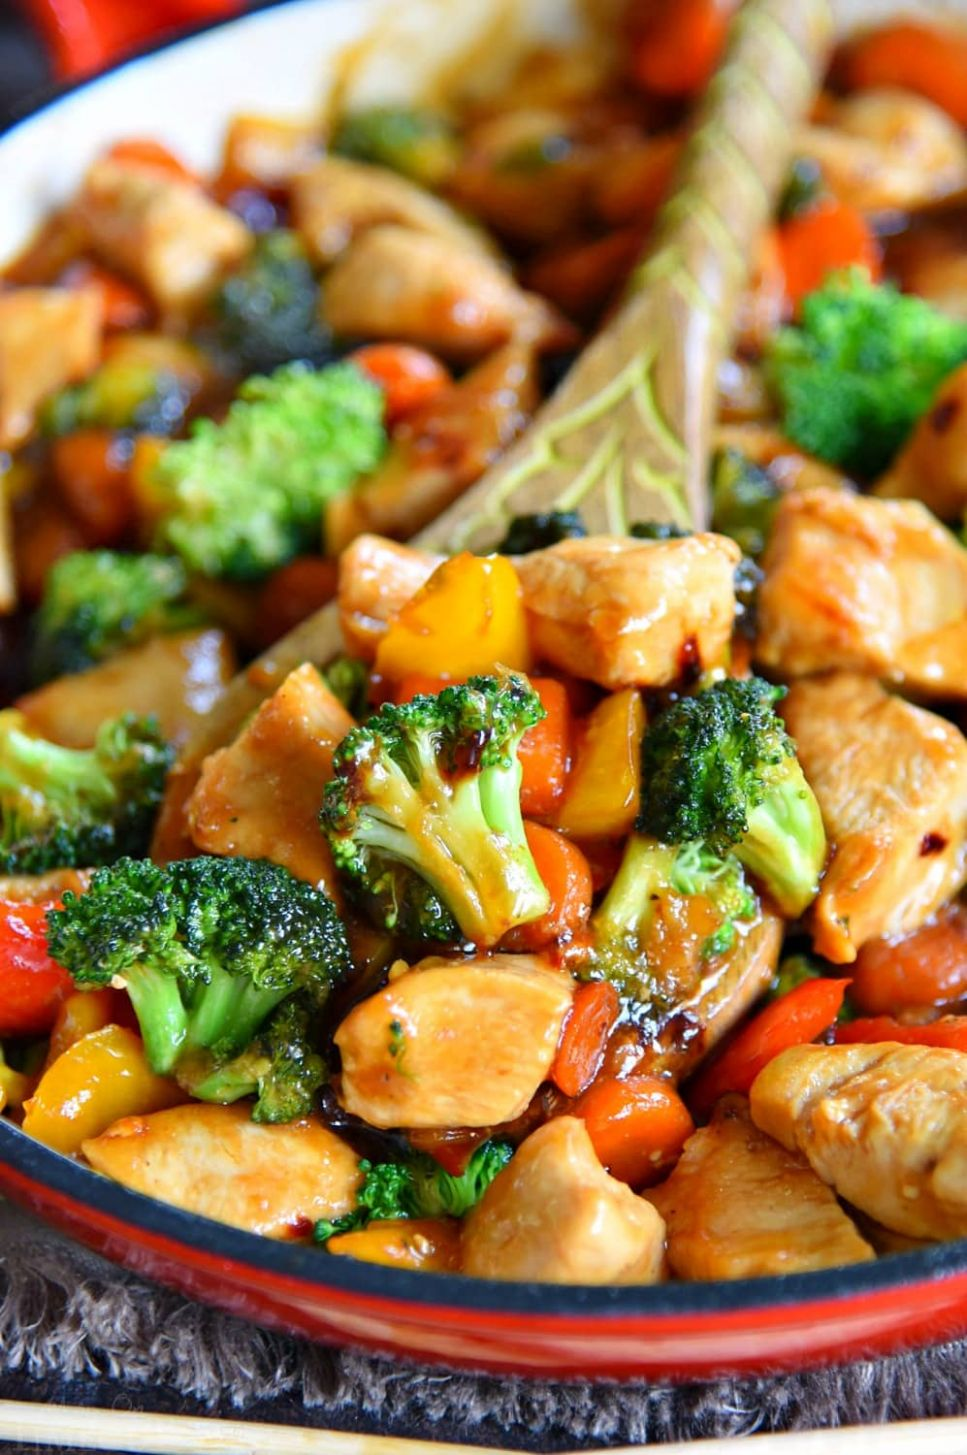 Chicken Stir Fry Recipe - Healthy Chicken Recipes